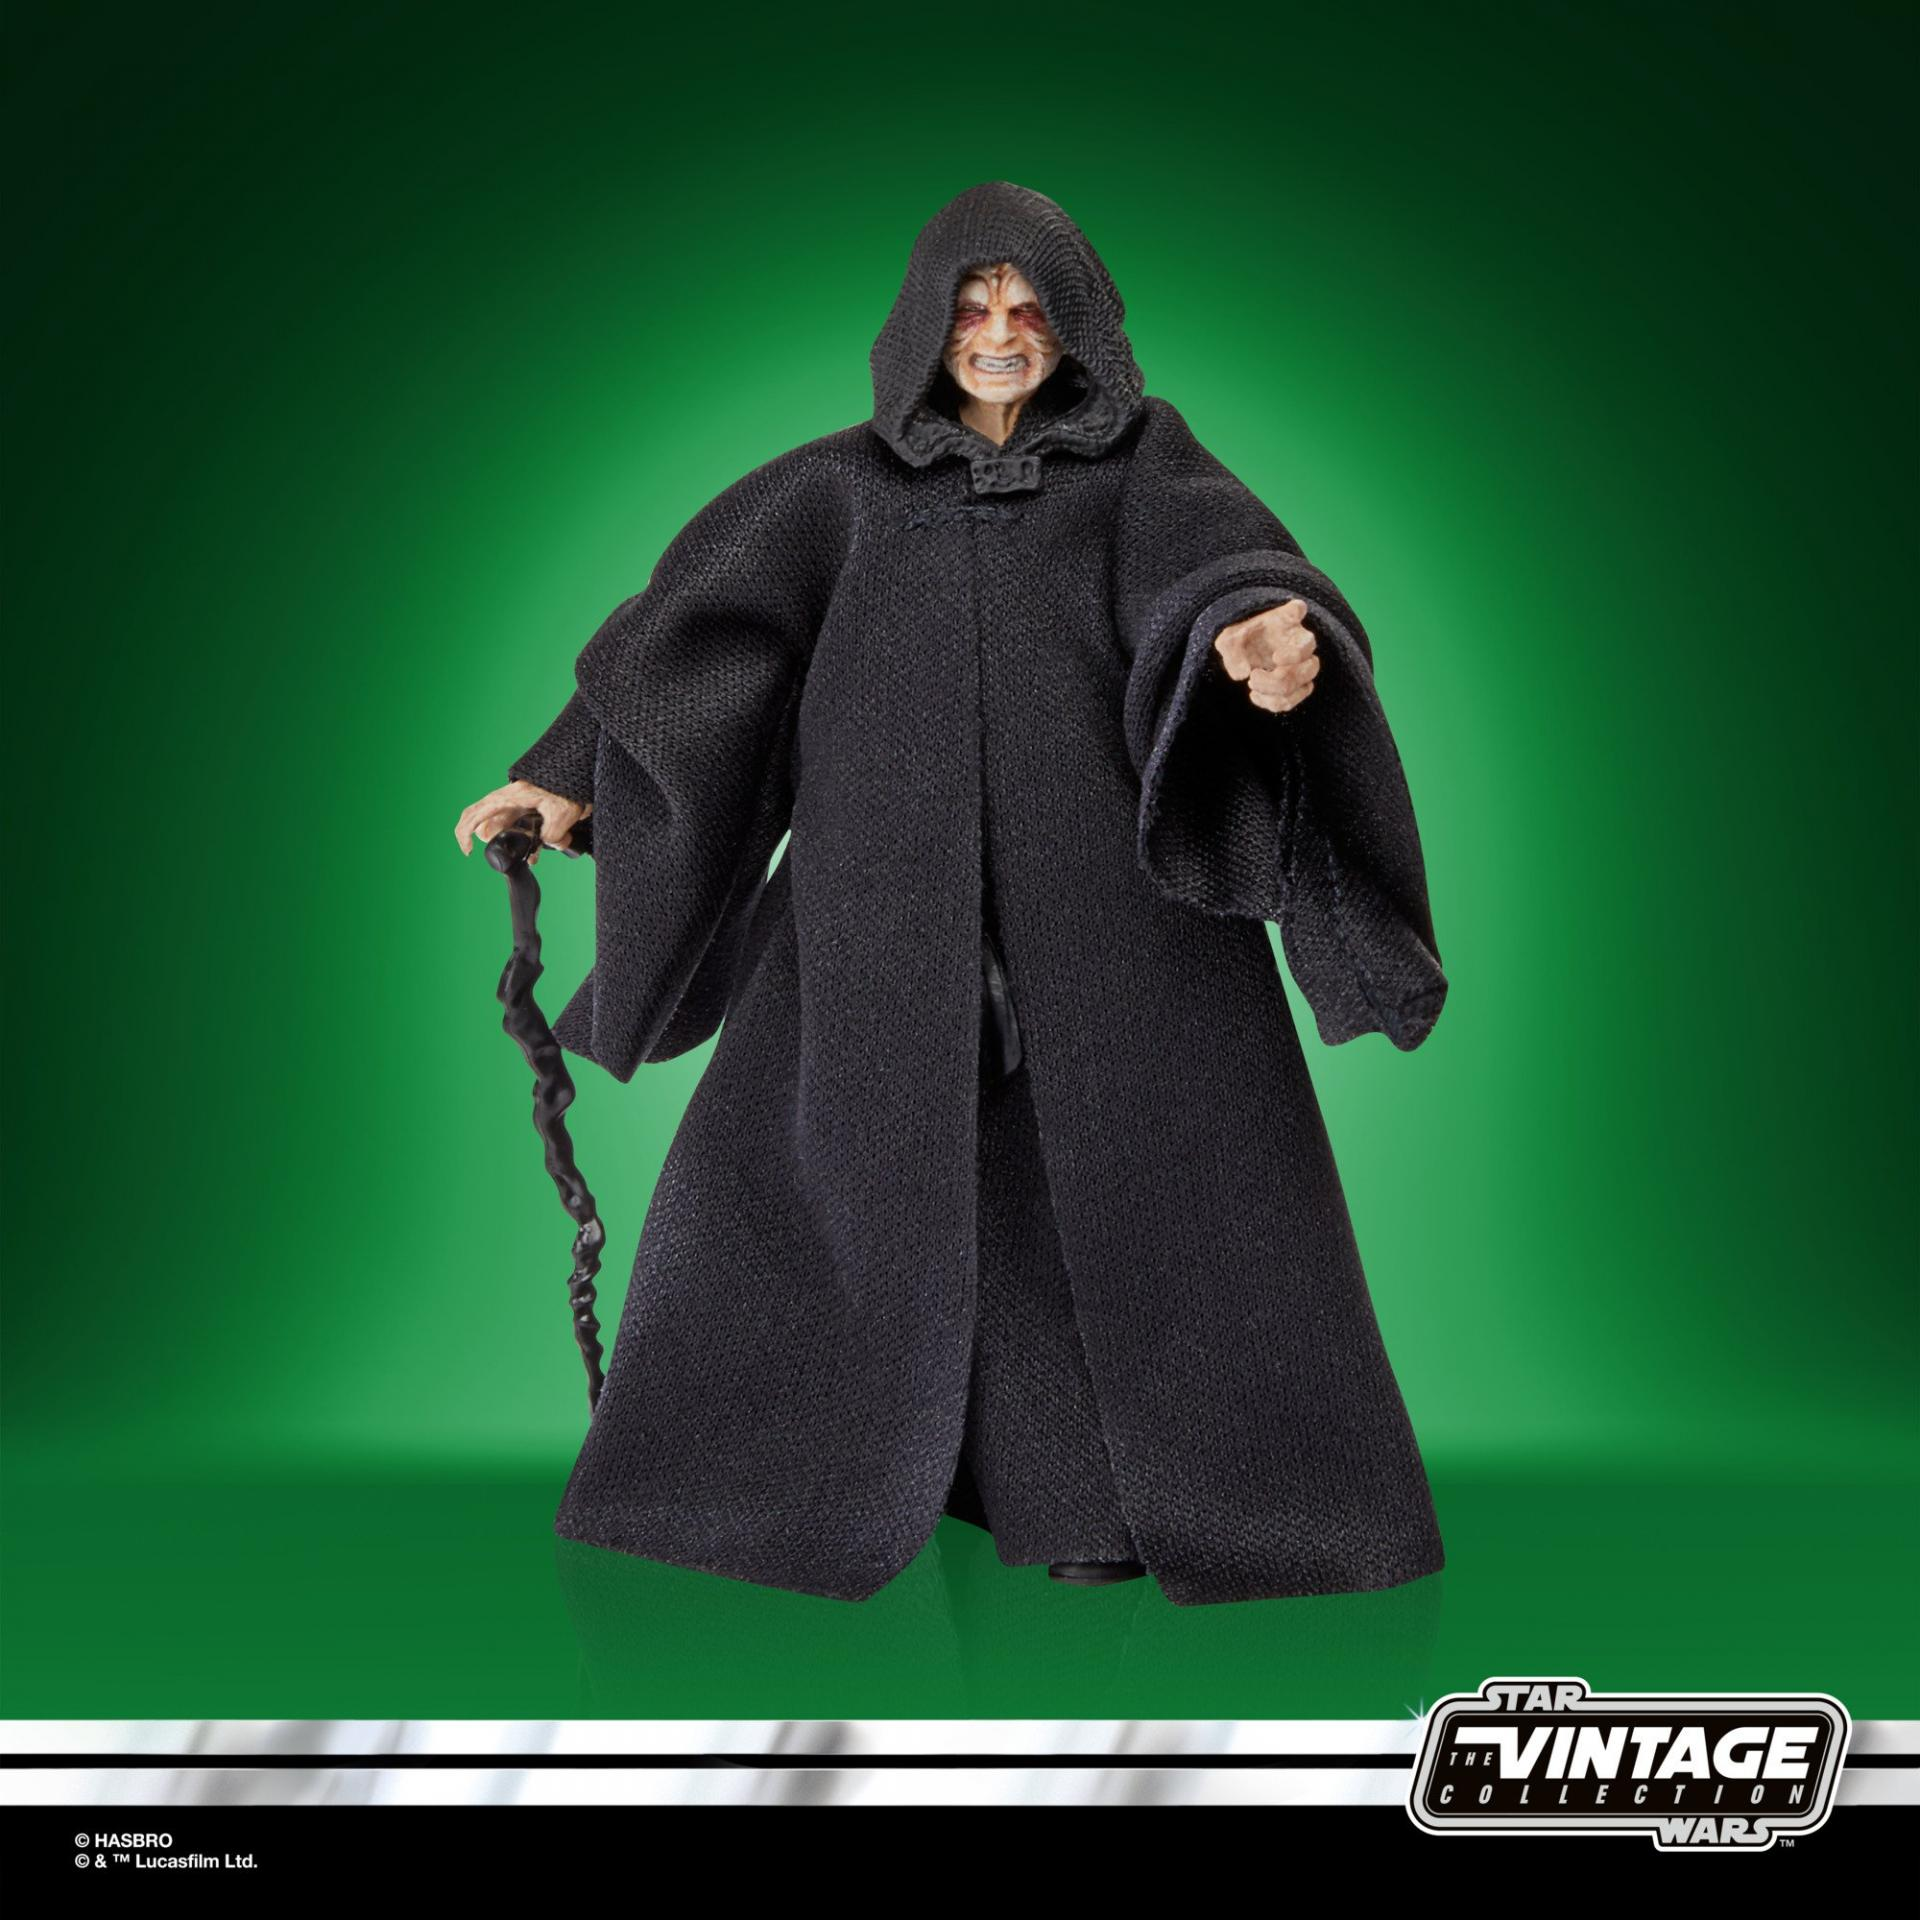 Star wars the vintage collection the emperor